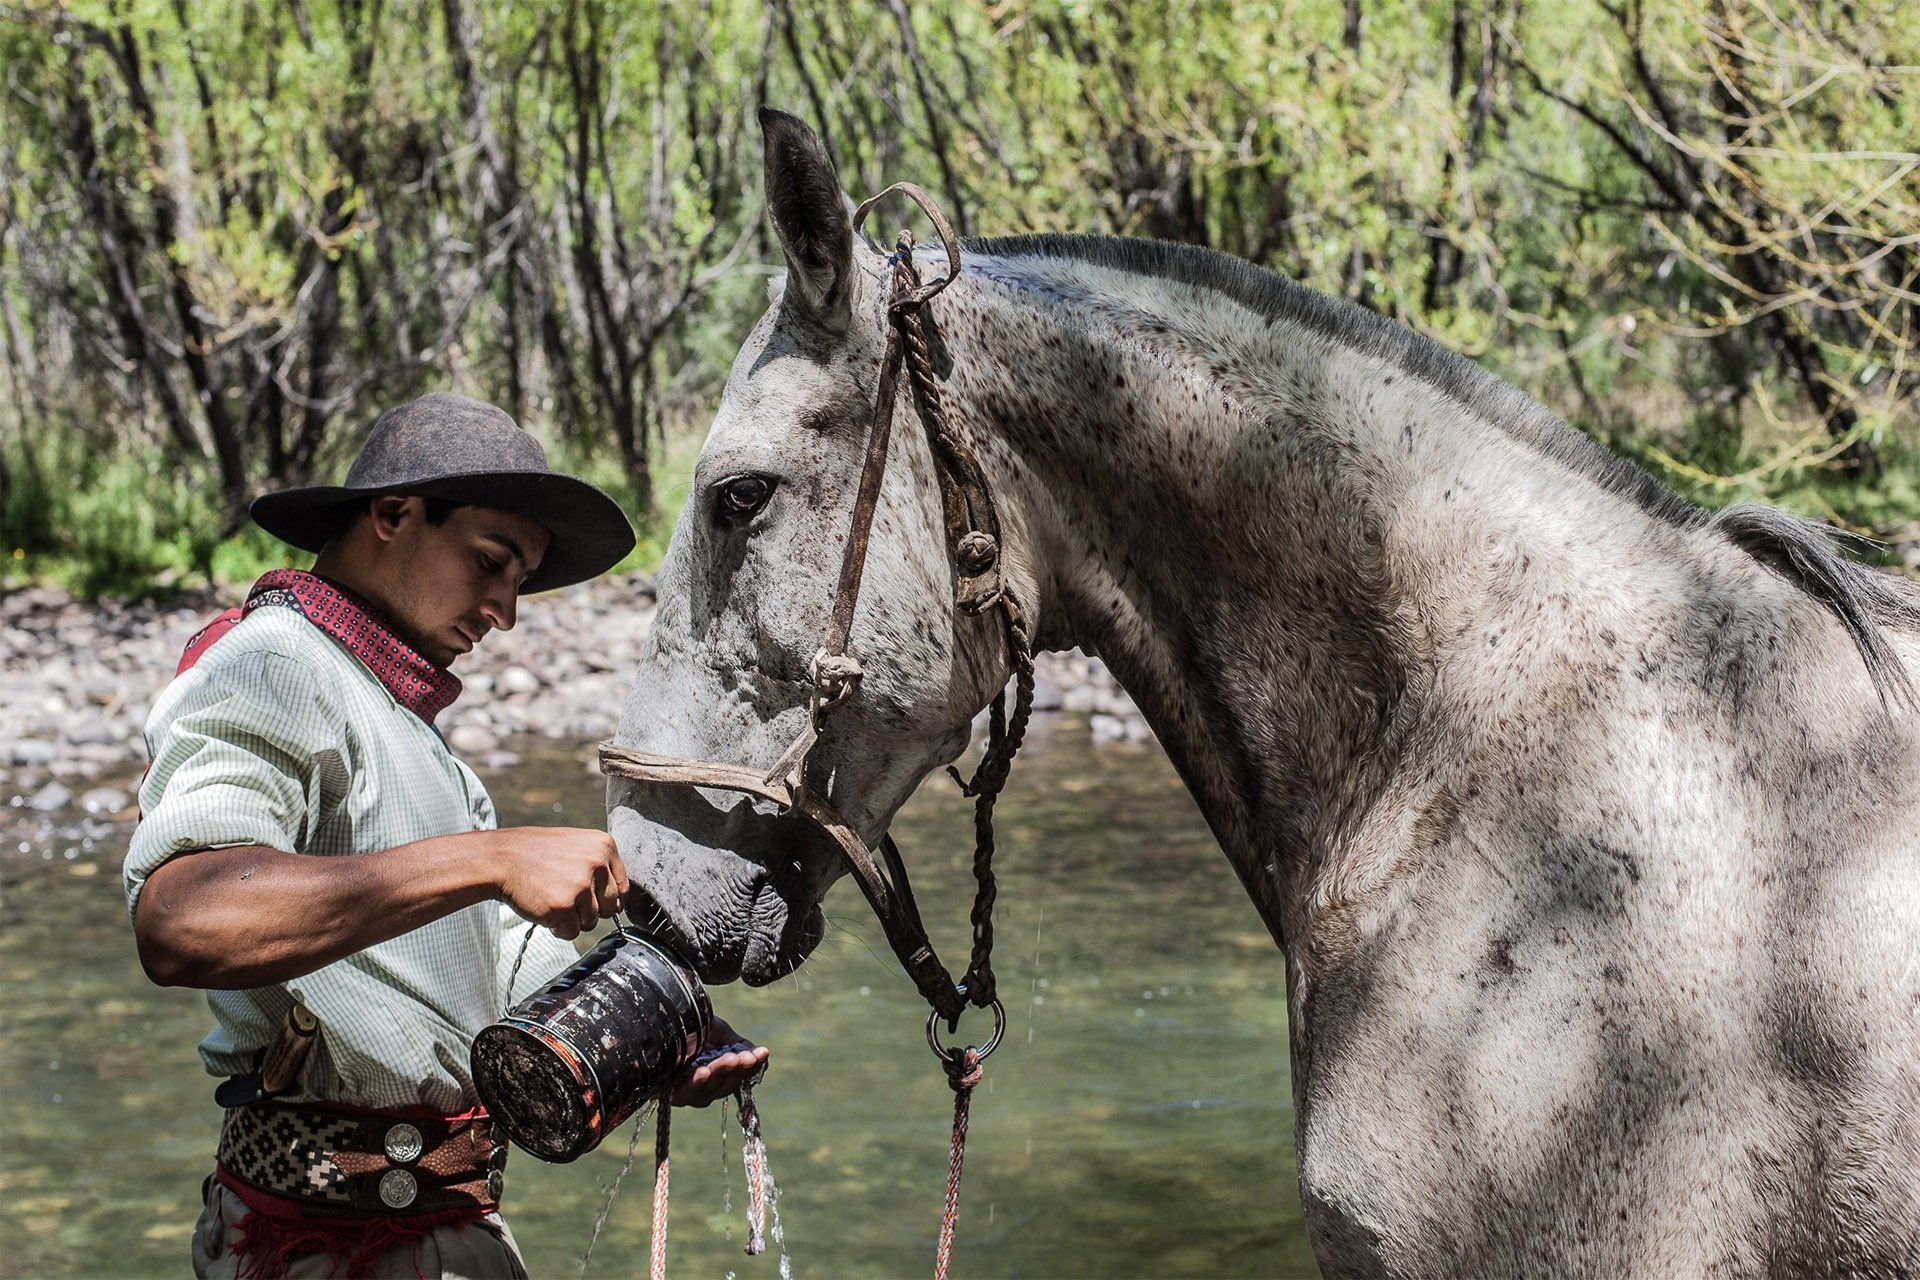 roque-bags_-travellog_gaucho-giving-water-to-horse-patagonia